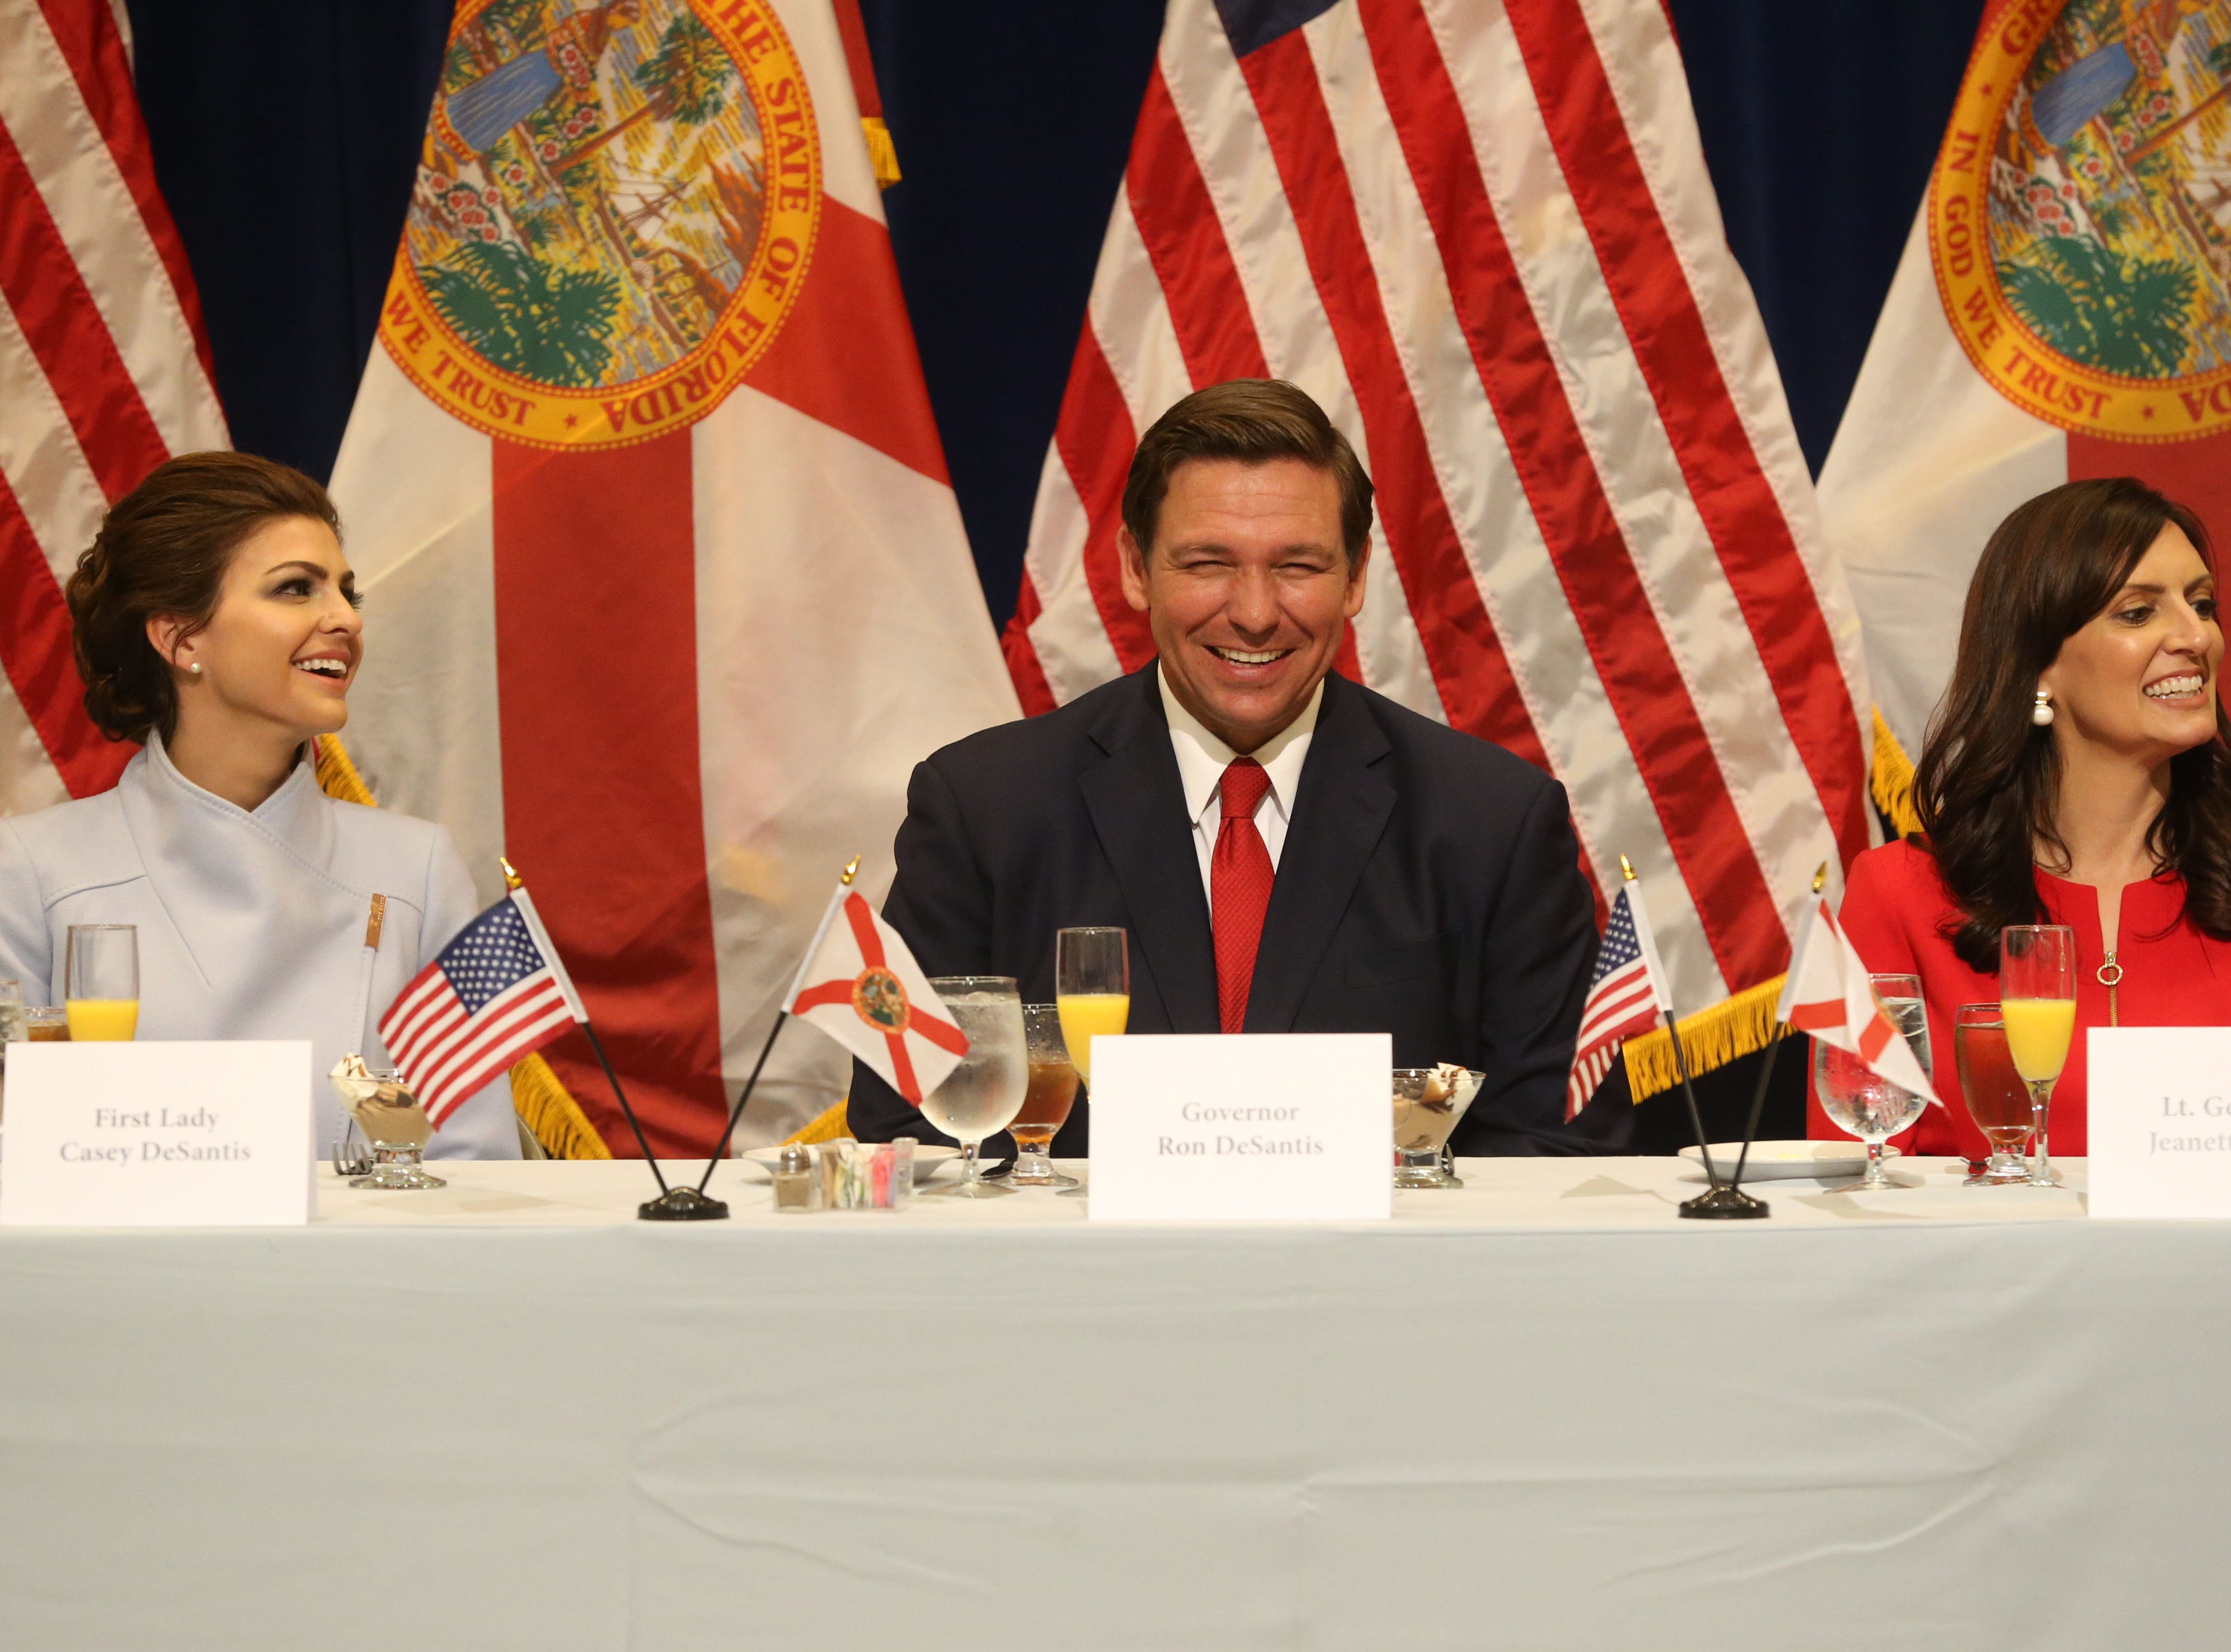 For the first time in Inaugural history, Gov. Ron DeSantis addresses FloridaÕs Legislative leaders and Cabinet officials. DeSantis discusses his plans to work with our stateÕs elected leaders to achieve a Bold Vision for a Brighter Future, Tuesday, Jan. 8, 2019. First lady Casey DeSantis, left, Gov. Ron DeSantis, and Lt. Gov. Jeanette Nunez laugh during a toast given by Senate President Bill Galvano.